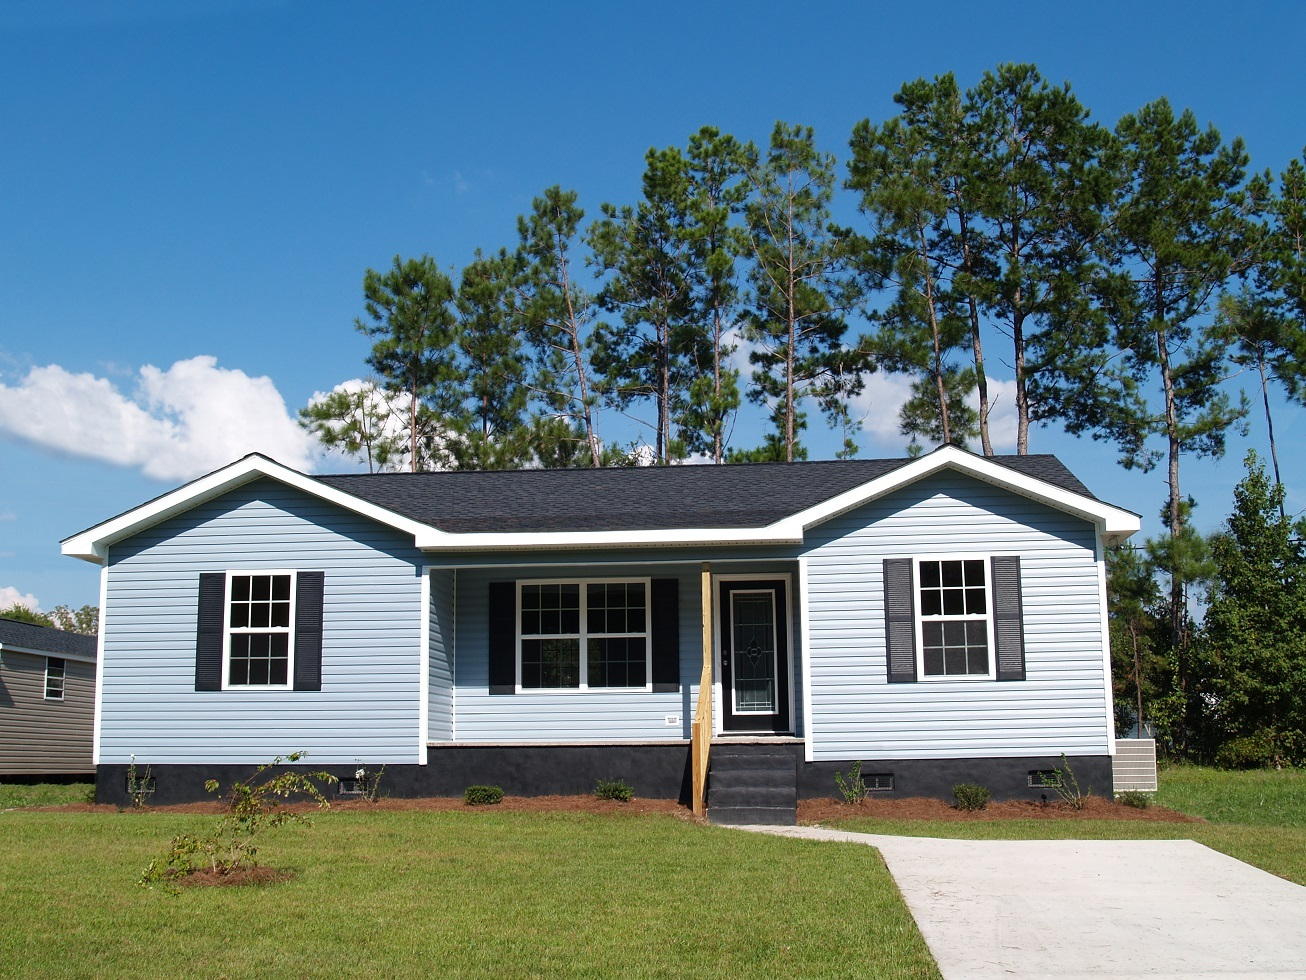 Rebekah Graham - Real Estate Agent with United Country Properties image 1